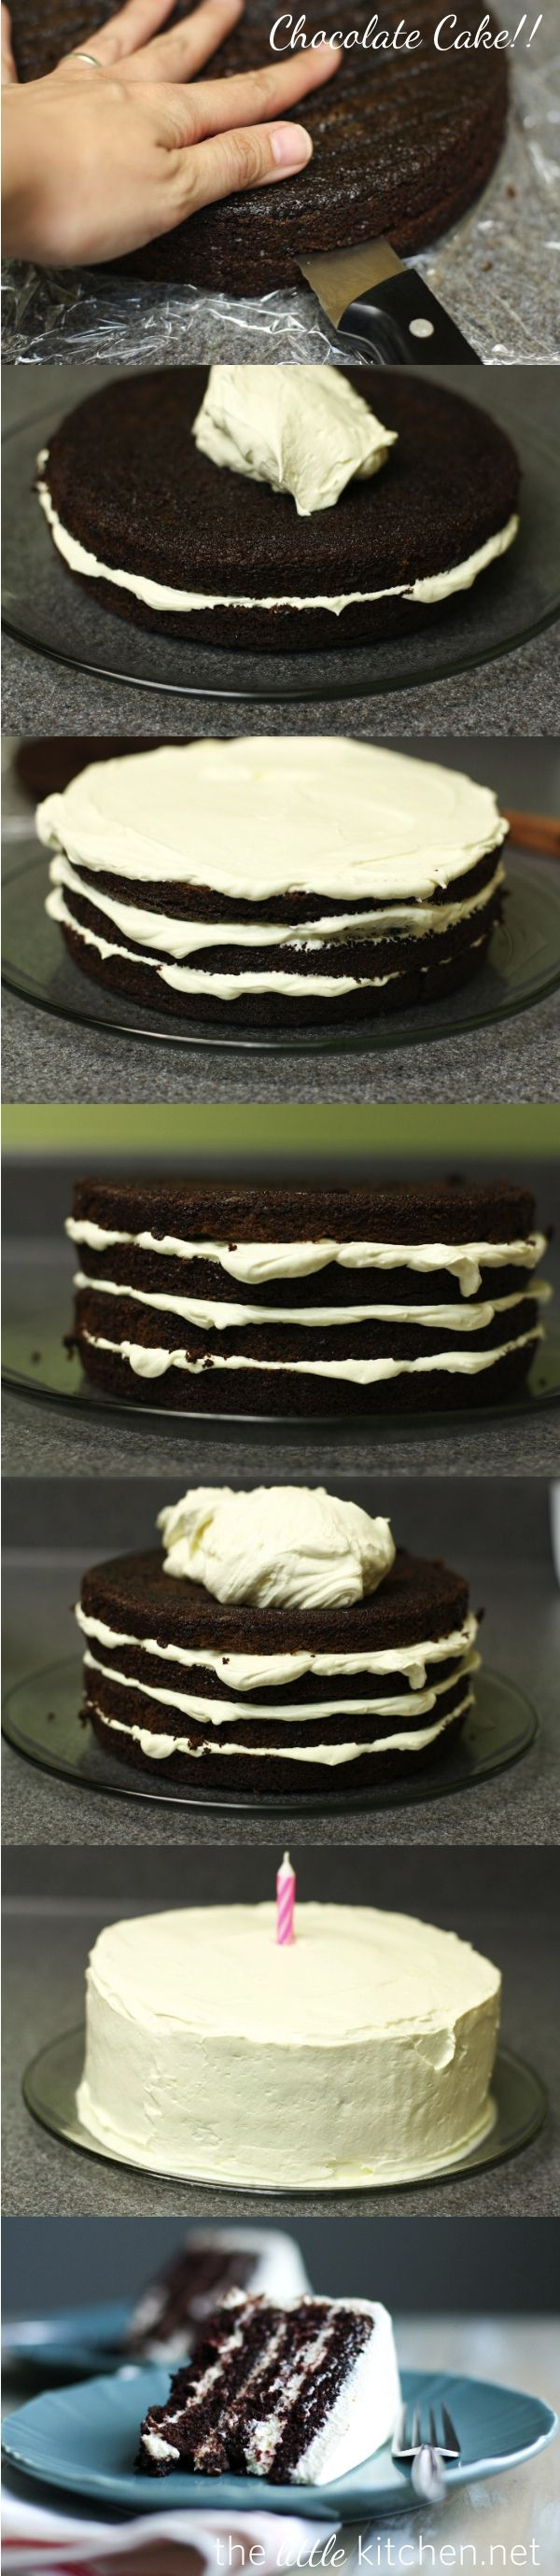 The Best Chocolate Cake Ever with Pudding Frosting from thelittlekitchen.net